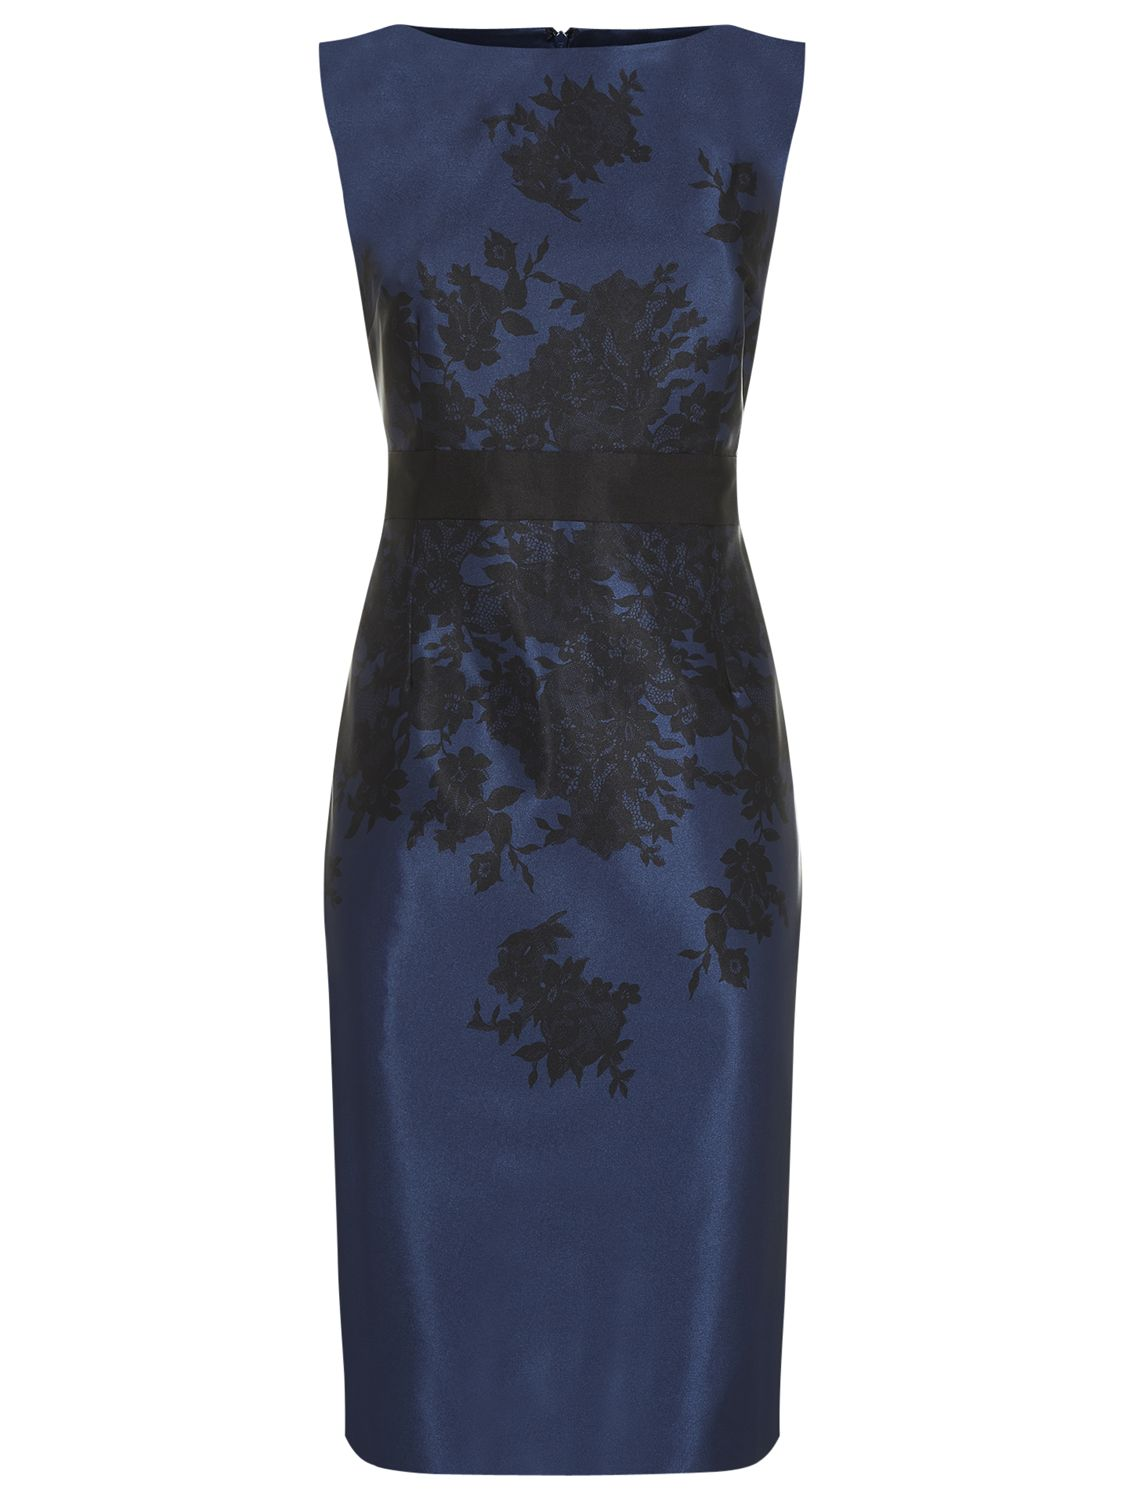 planet floral lace print dress, planet, floral, lace, print, dress, multi blue|multi blue|multi blue|multi blue|multi blue|multi blue|multi blue|multi purple|multi purple|multi purple|multi purple|multi purple|multi purple|multi purple, 16|14|12|18|20|10|8|16|8|14|10|12|20|18, clearance, womenswear offers, womens dresses offers, women, plus size, inactive womenswear, new reductions, womens dresses, special offers, 1691429